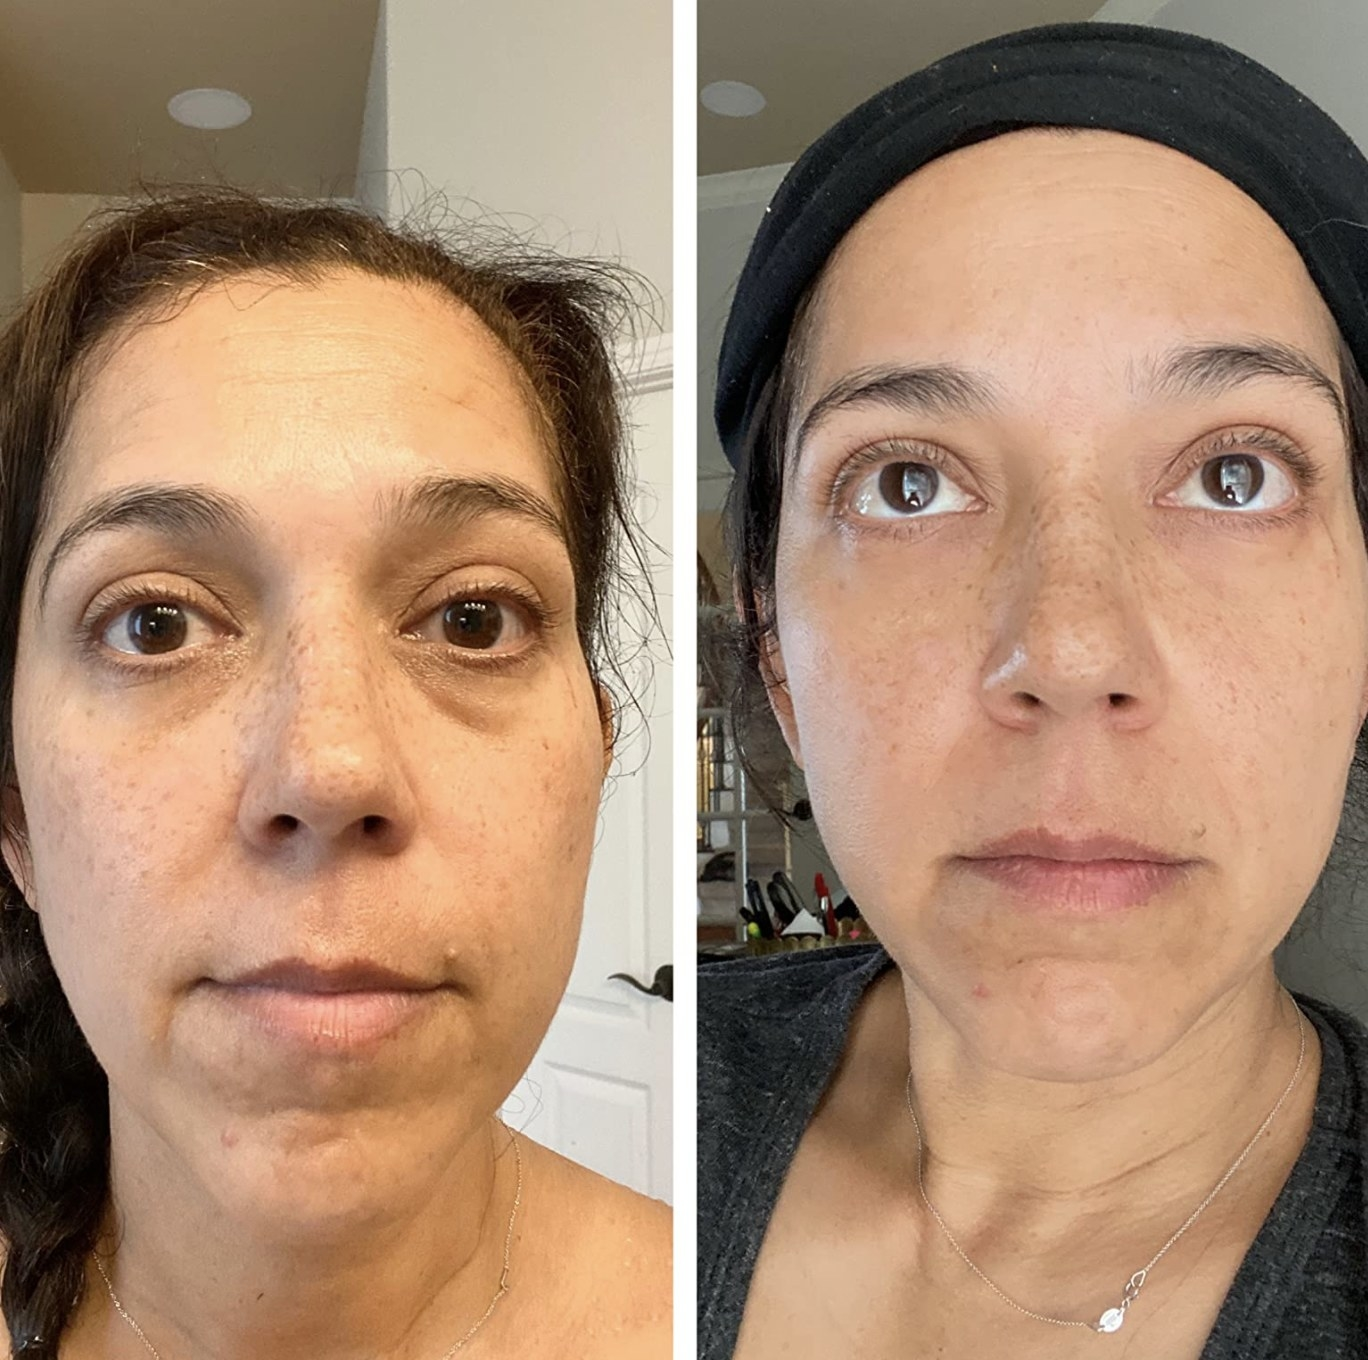 a before and after photo of a person with less puffiness under their eyes after using this kit